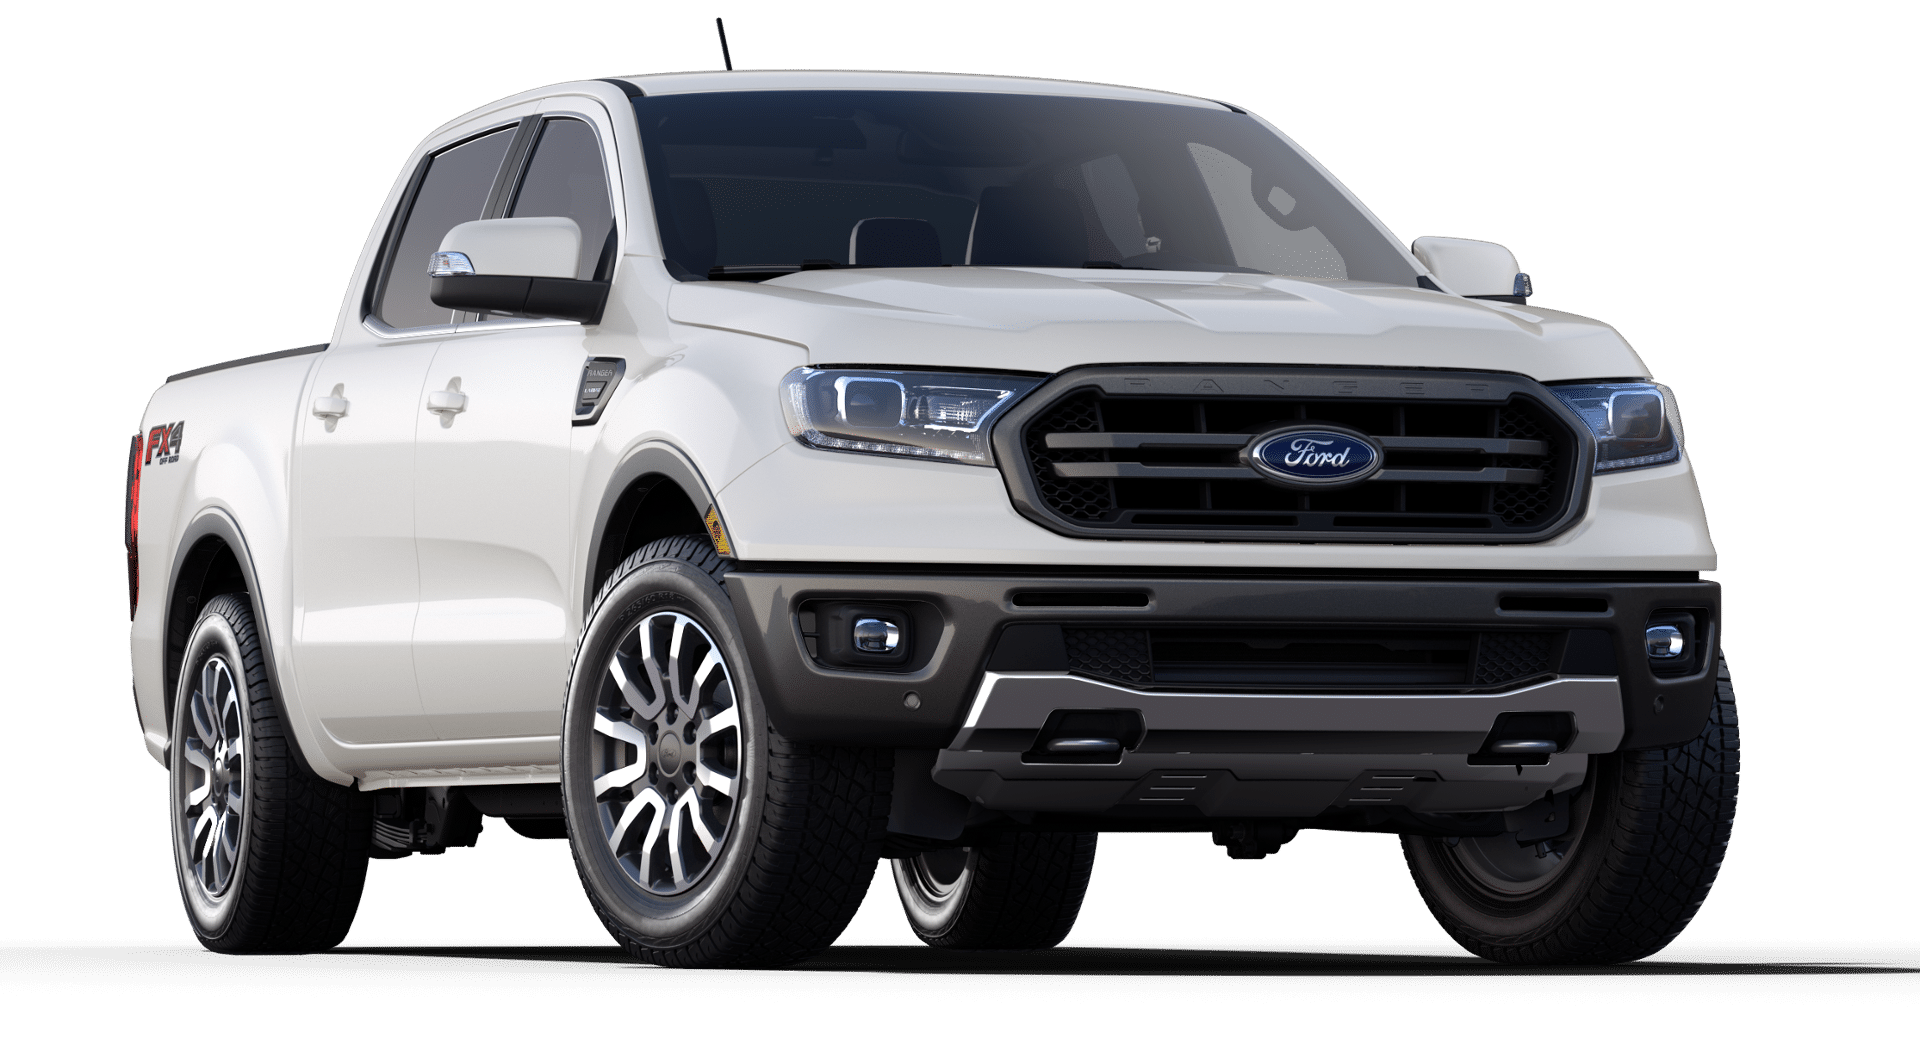 48 A F2019 Ford Ranger Price And Release Date